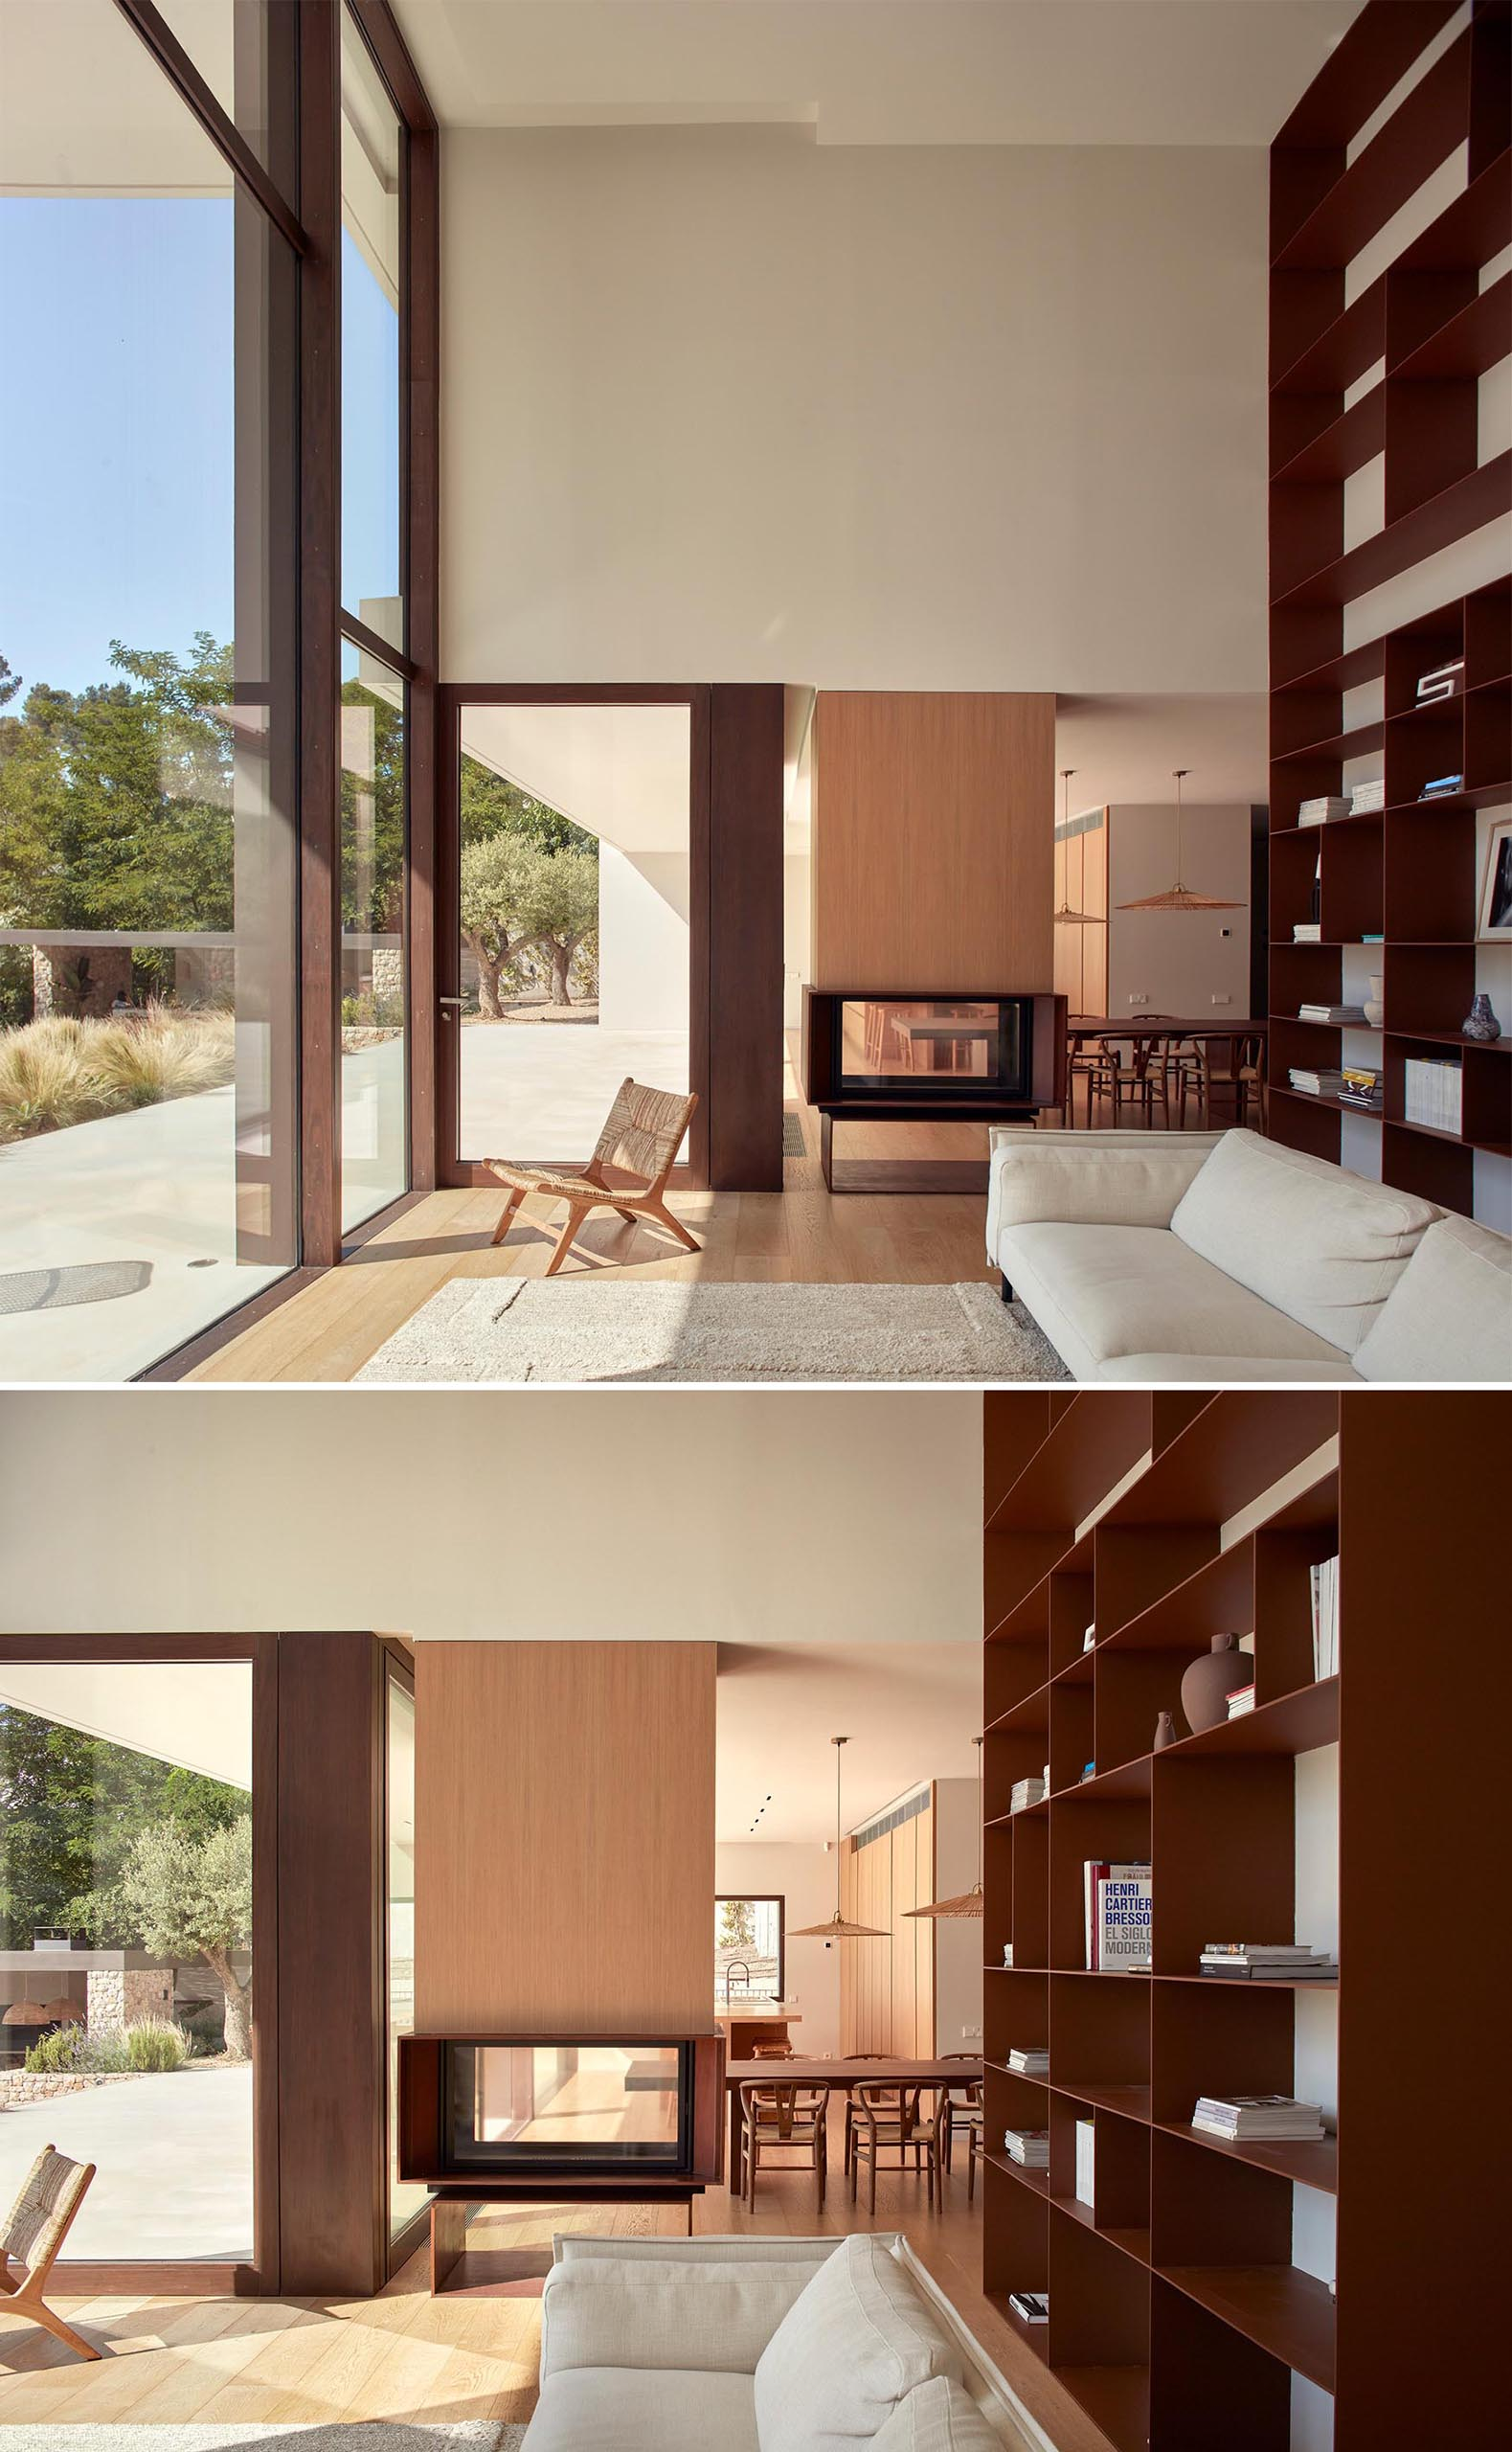 A modern living room with a double-height bookshelf and a see-through fireplace.